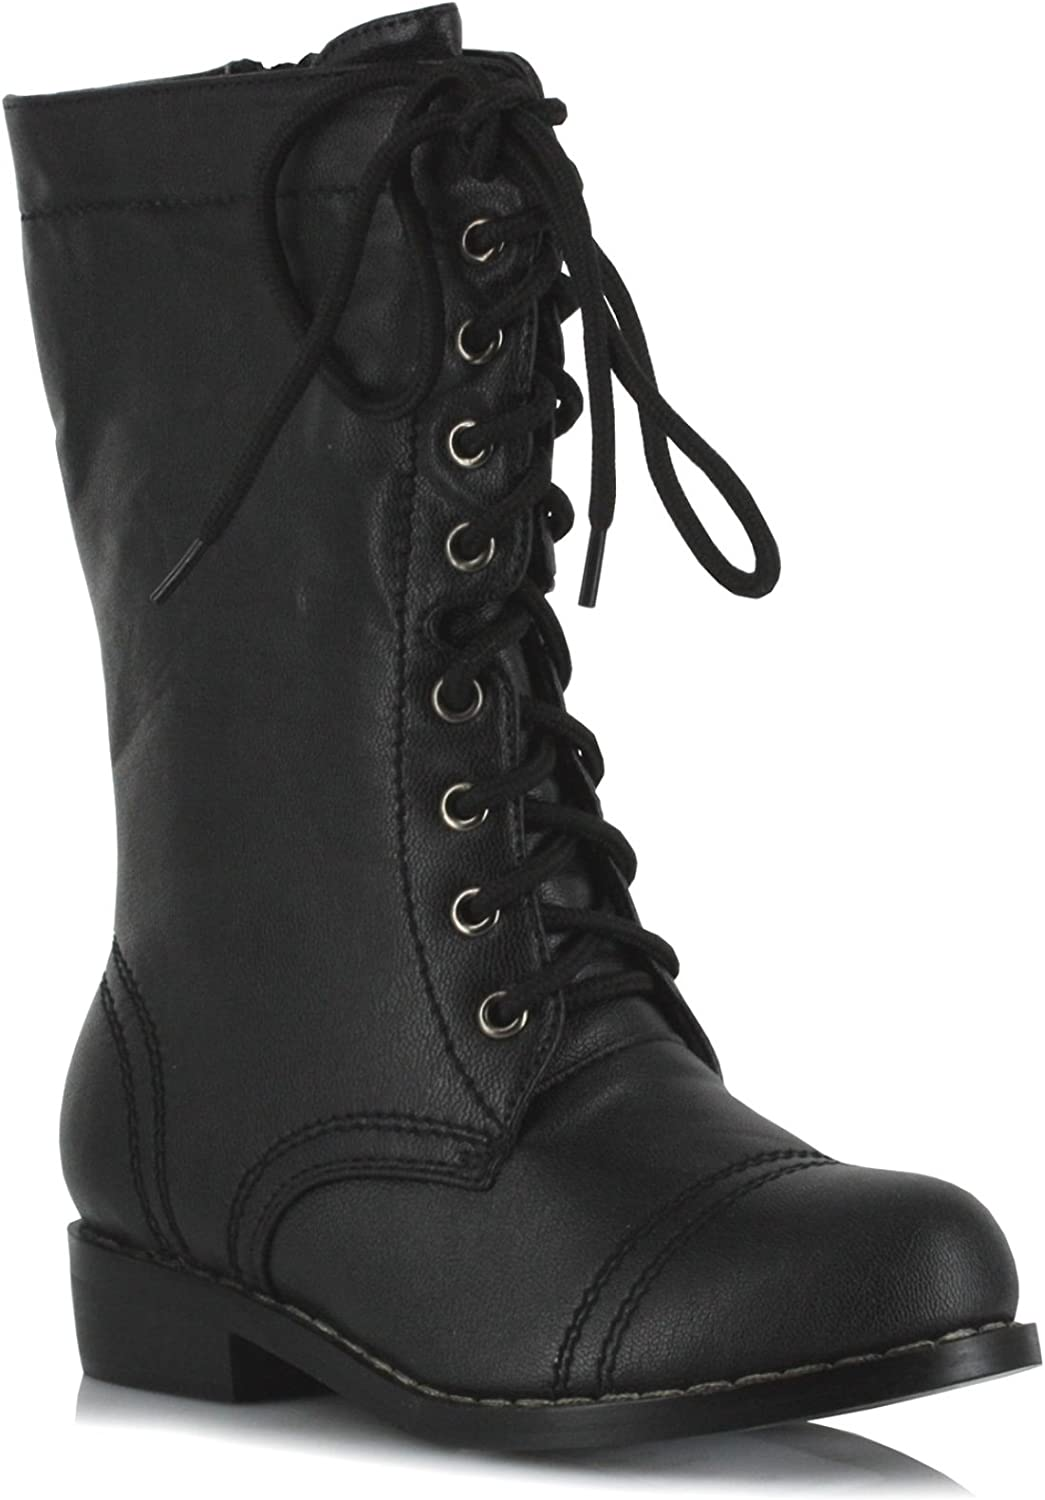 Ellie Clearance SALE Limited Ranking TOP20 time Shoes 1